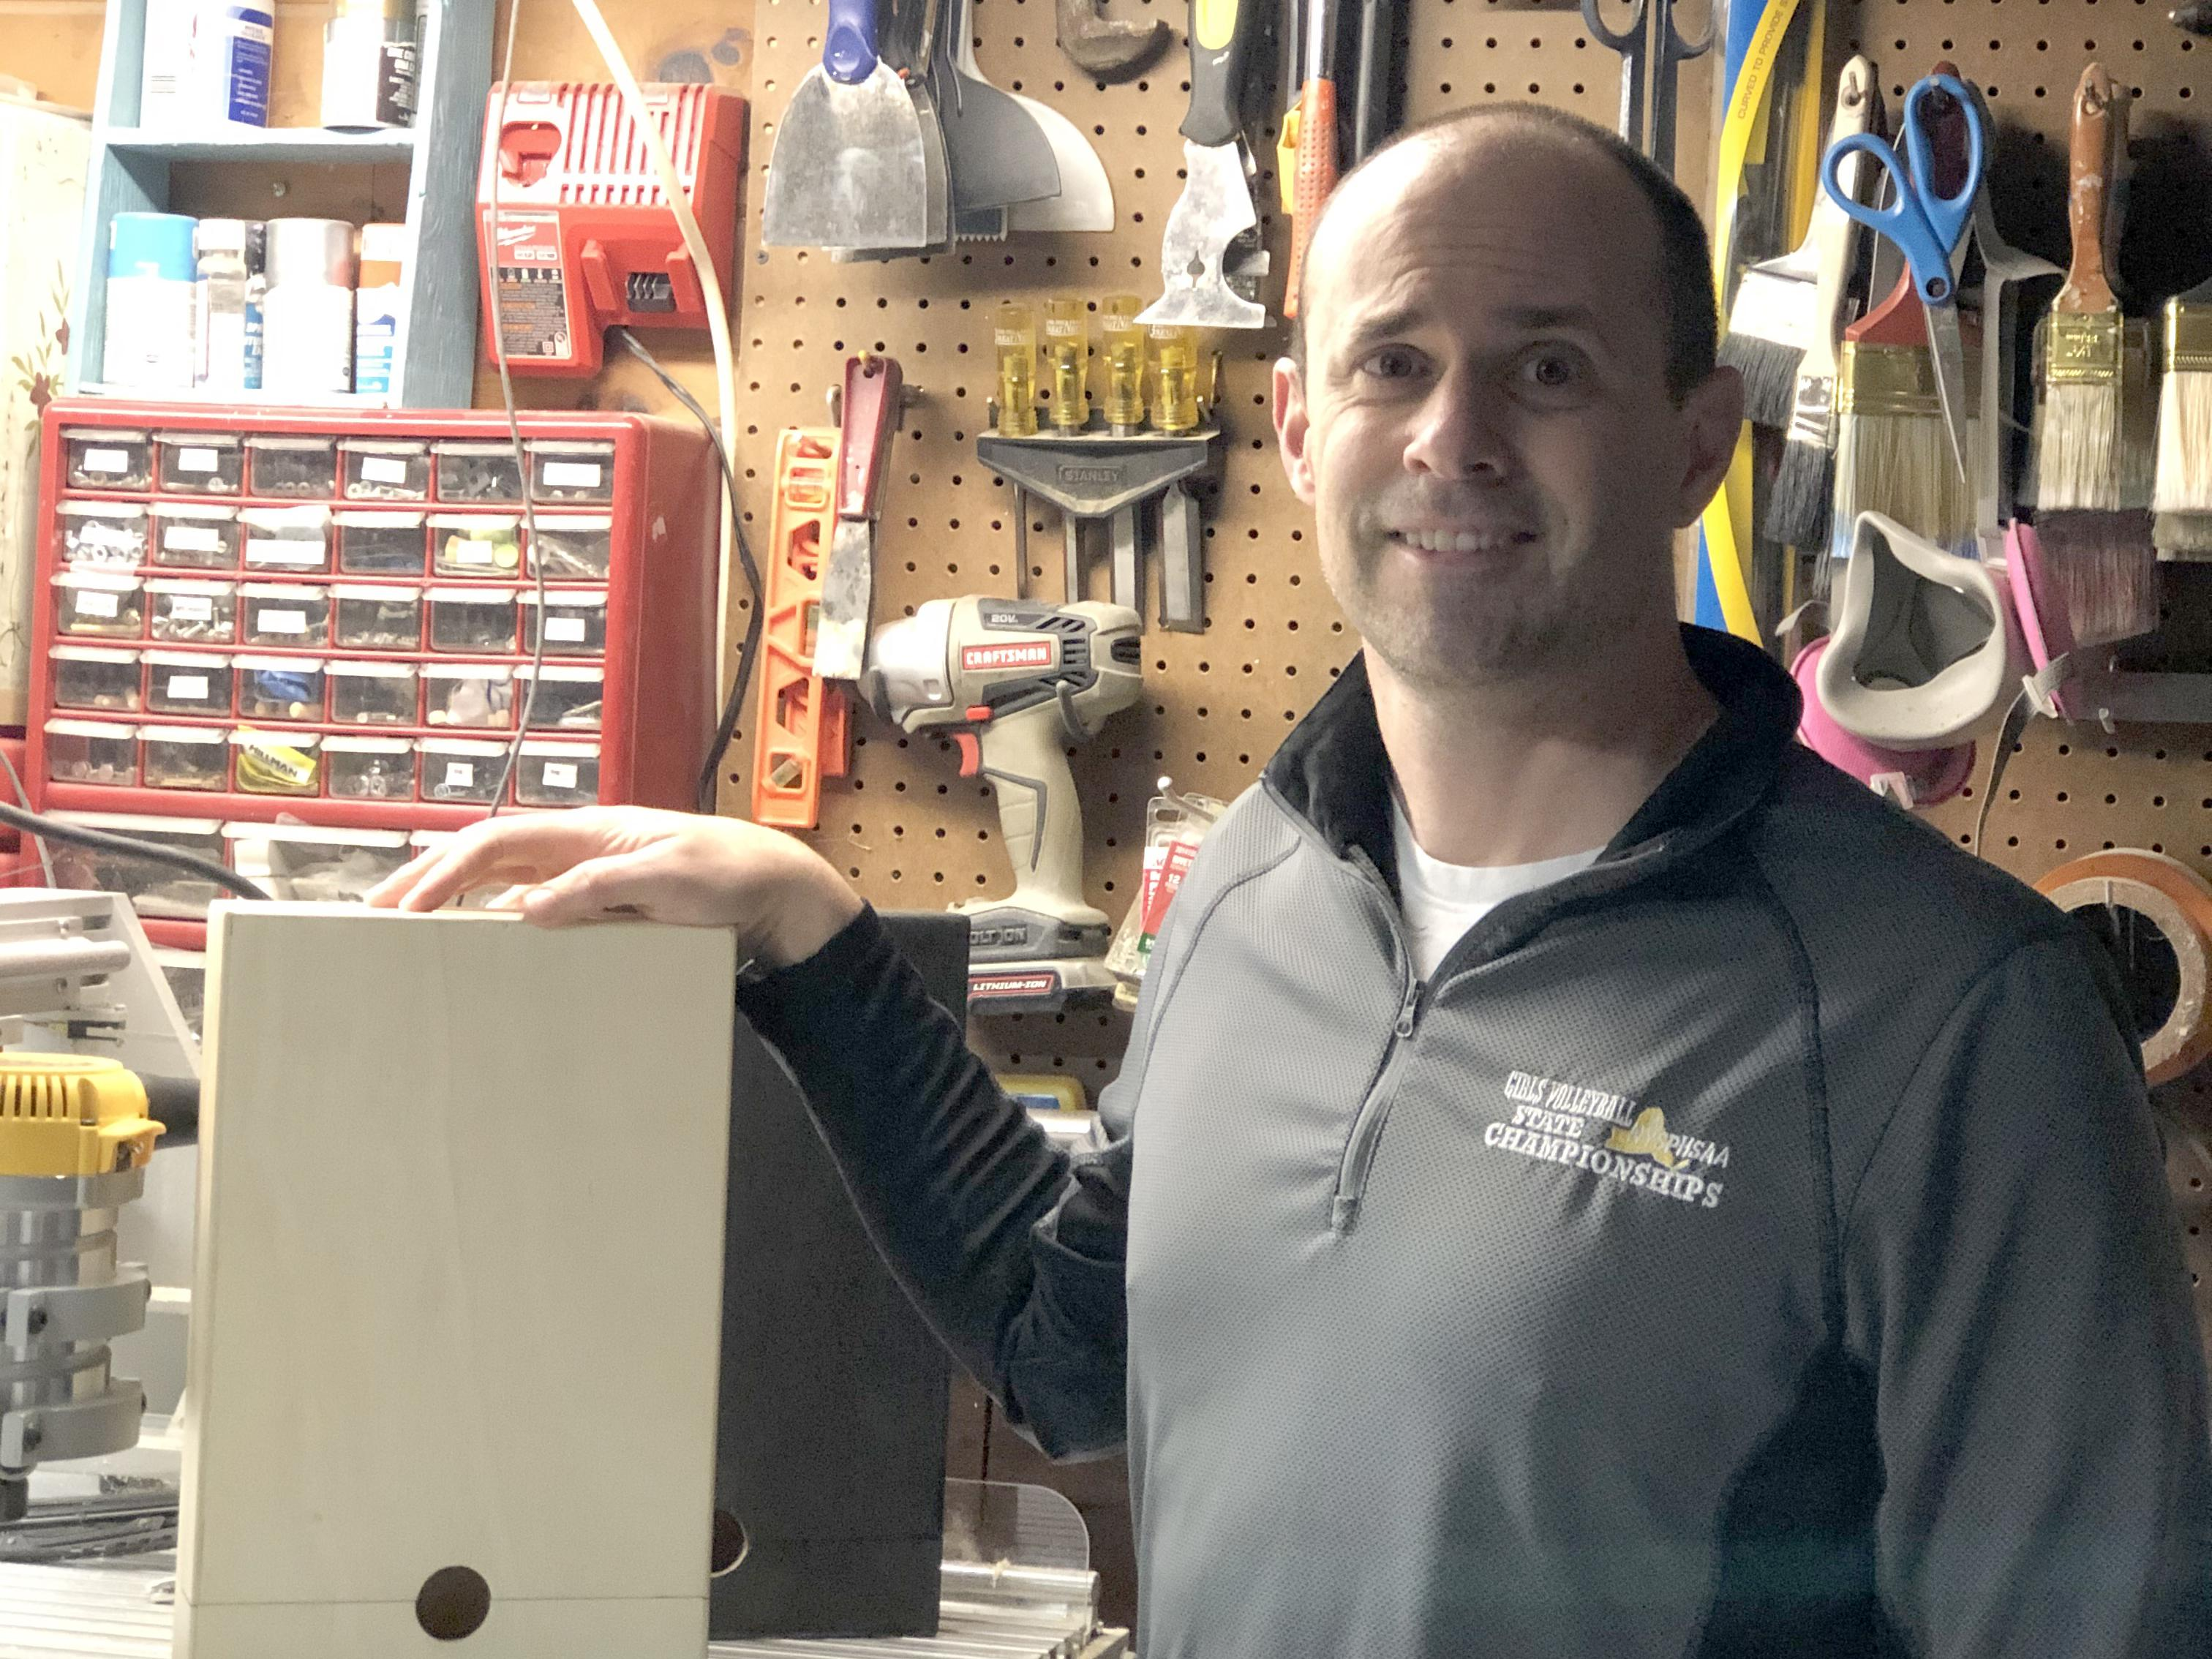 Jeff Evans, in his workshop space, shows off the wiNest, a patented idea that advanced to a statewide student business plan competition